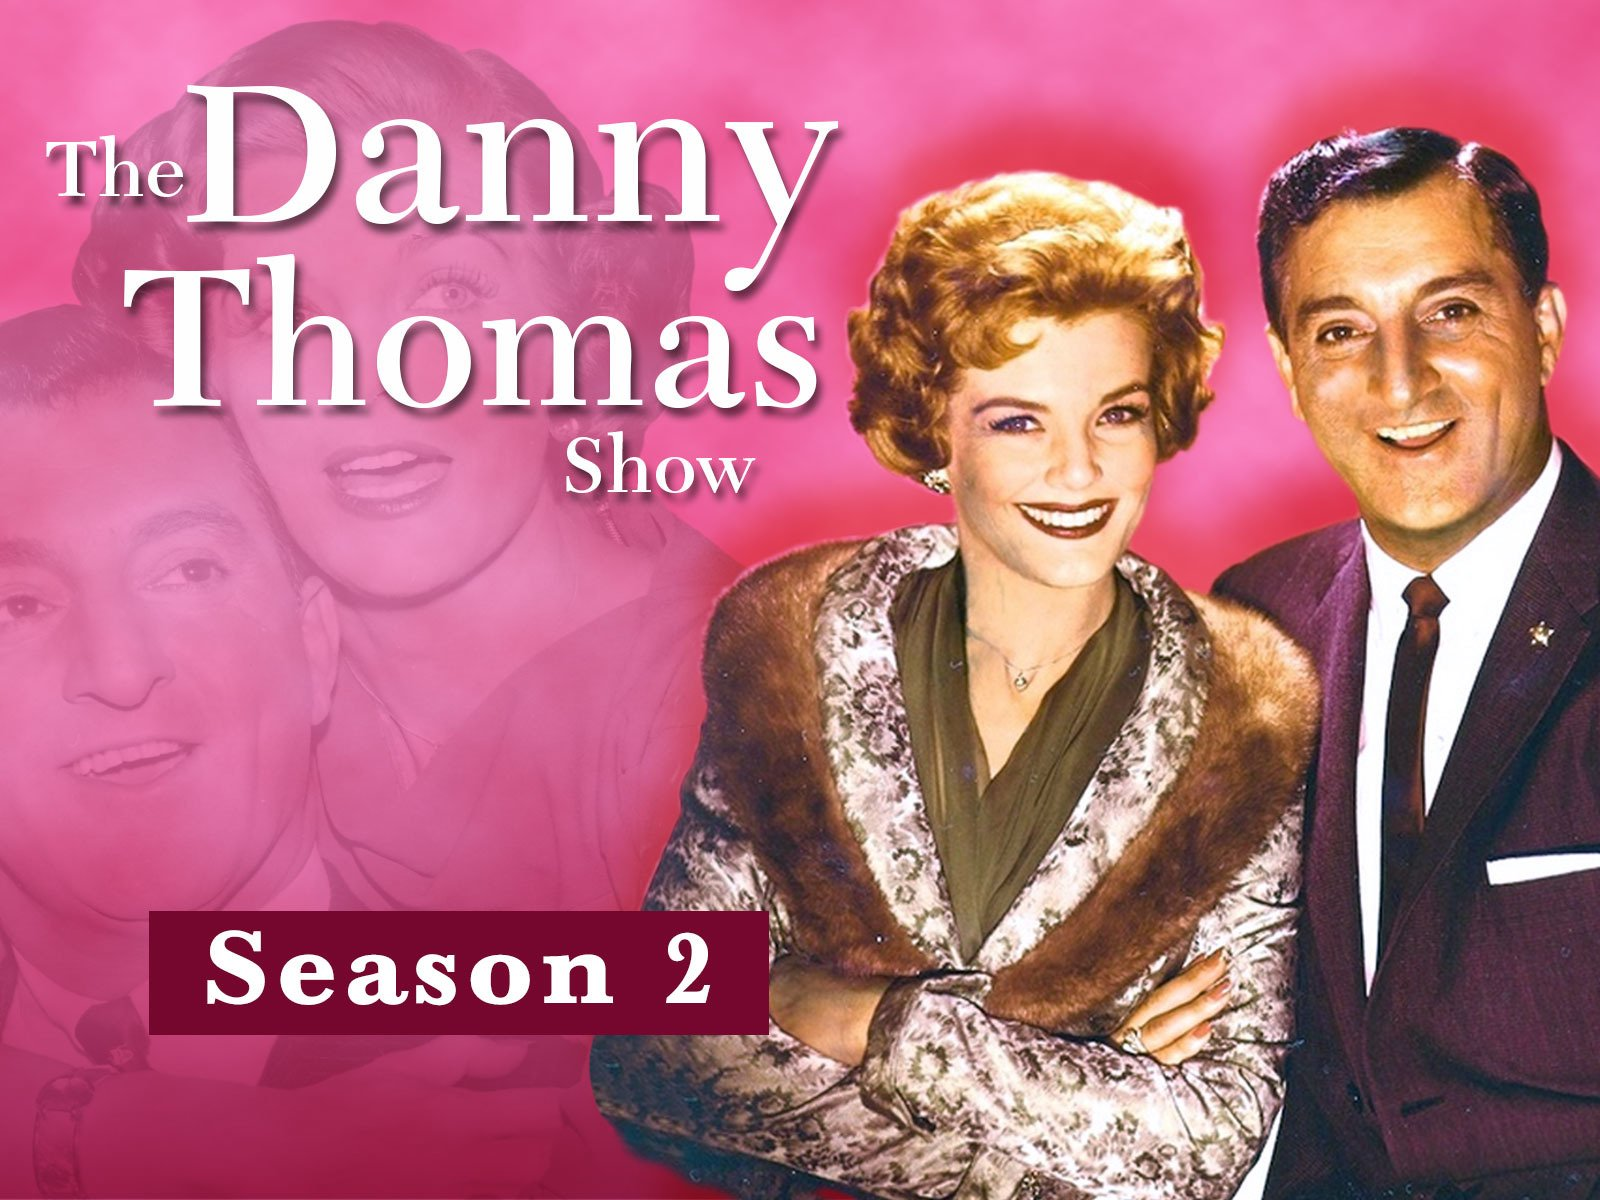 The Danny Thomas Show - Season 2